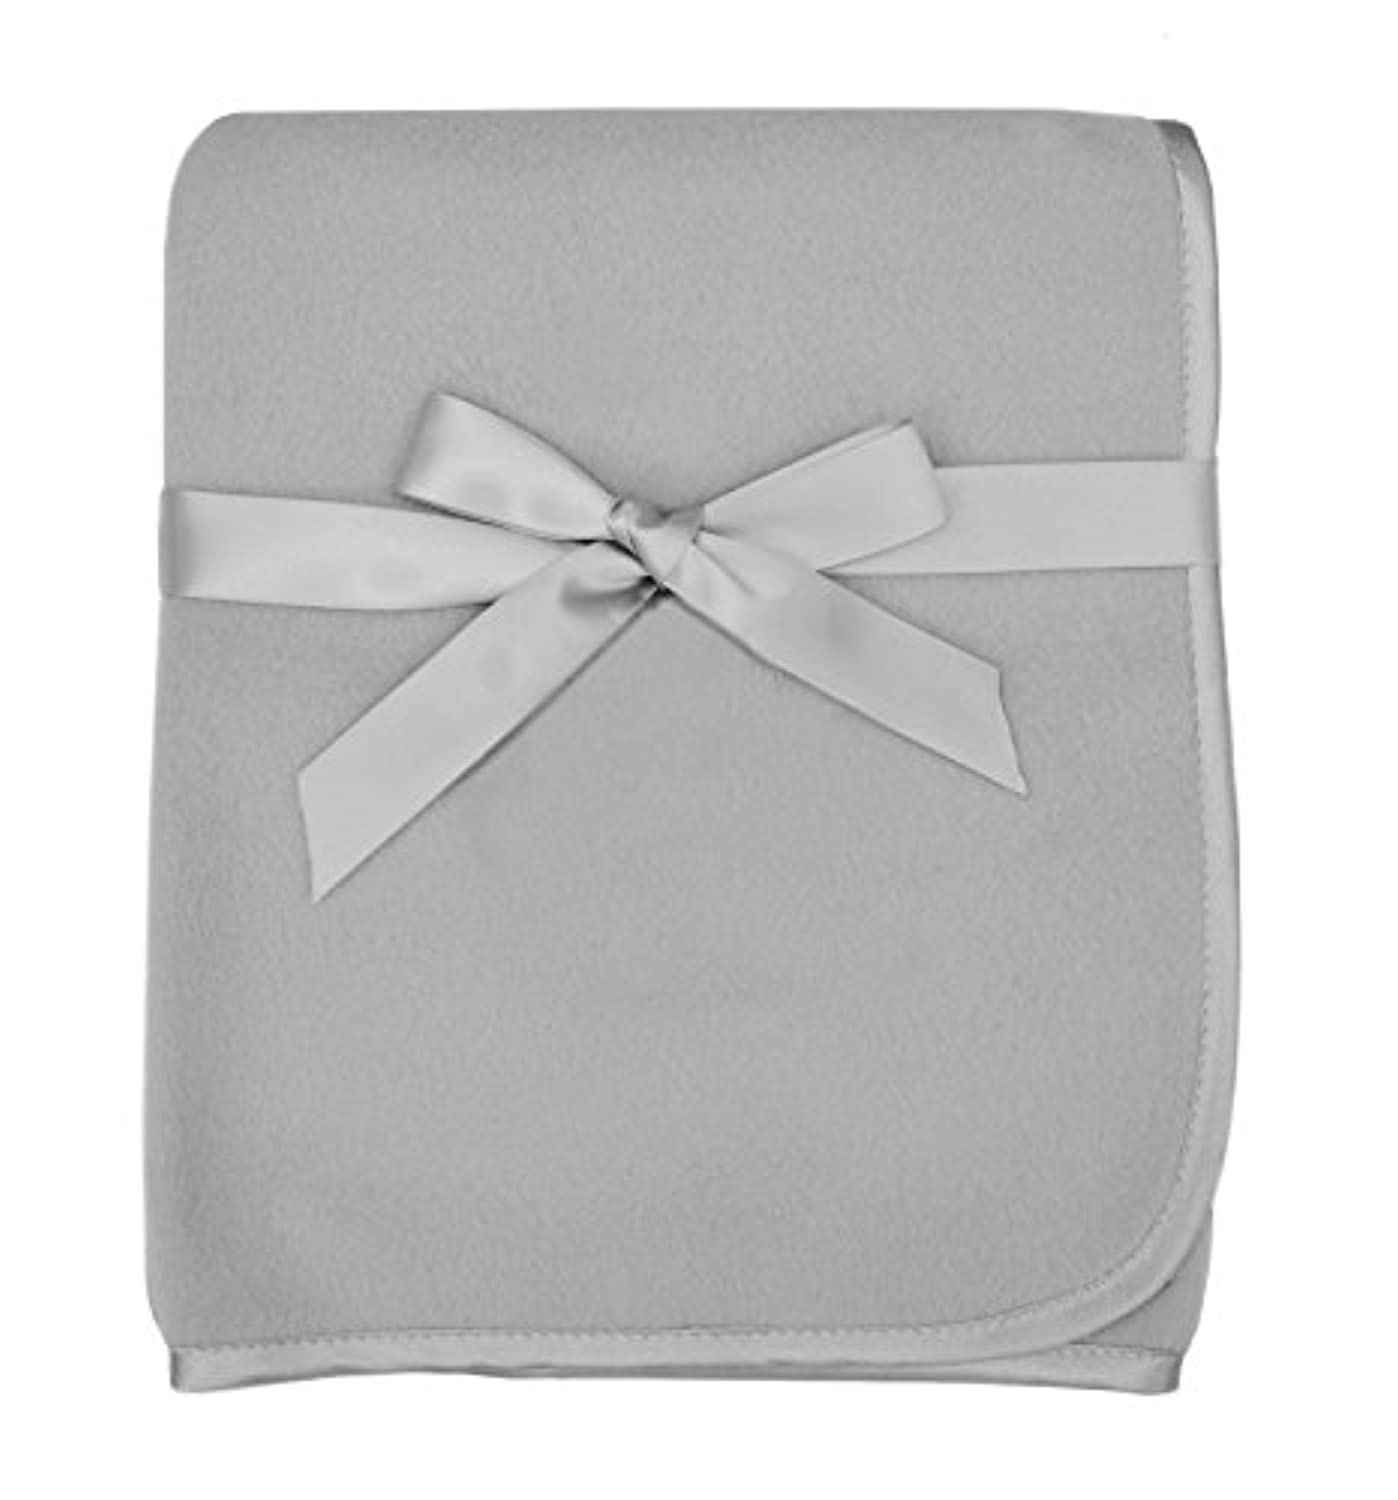 TL Care Fleece Blanket with Satin Trim, Gray, 3/8 by TL Care